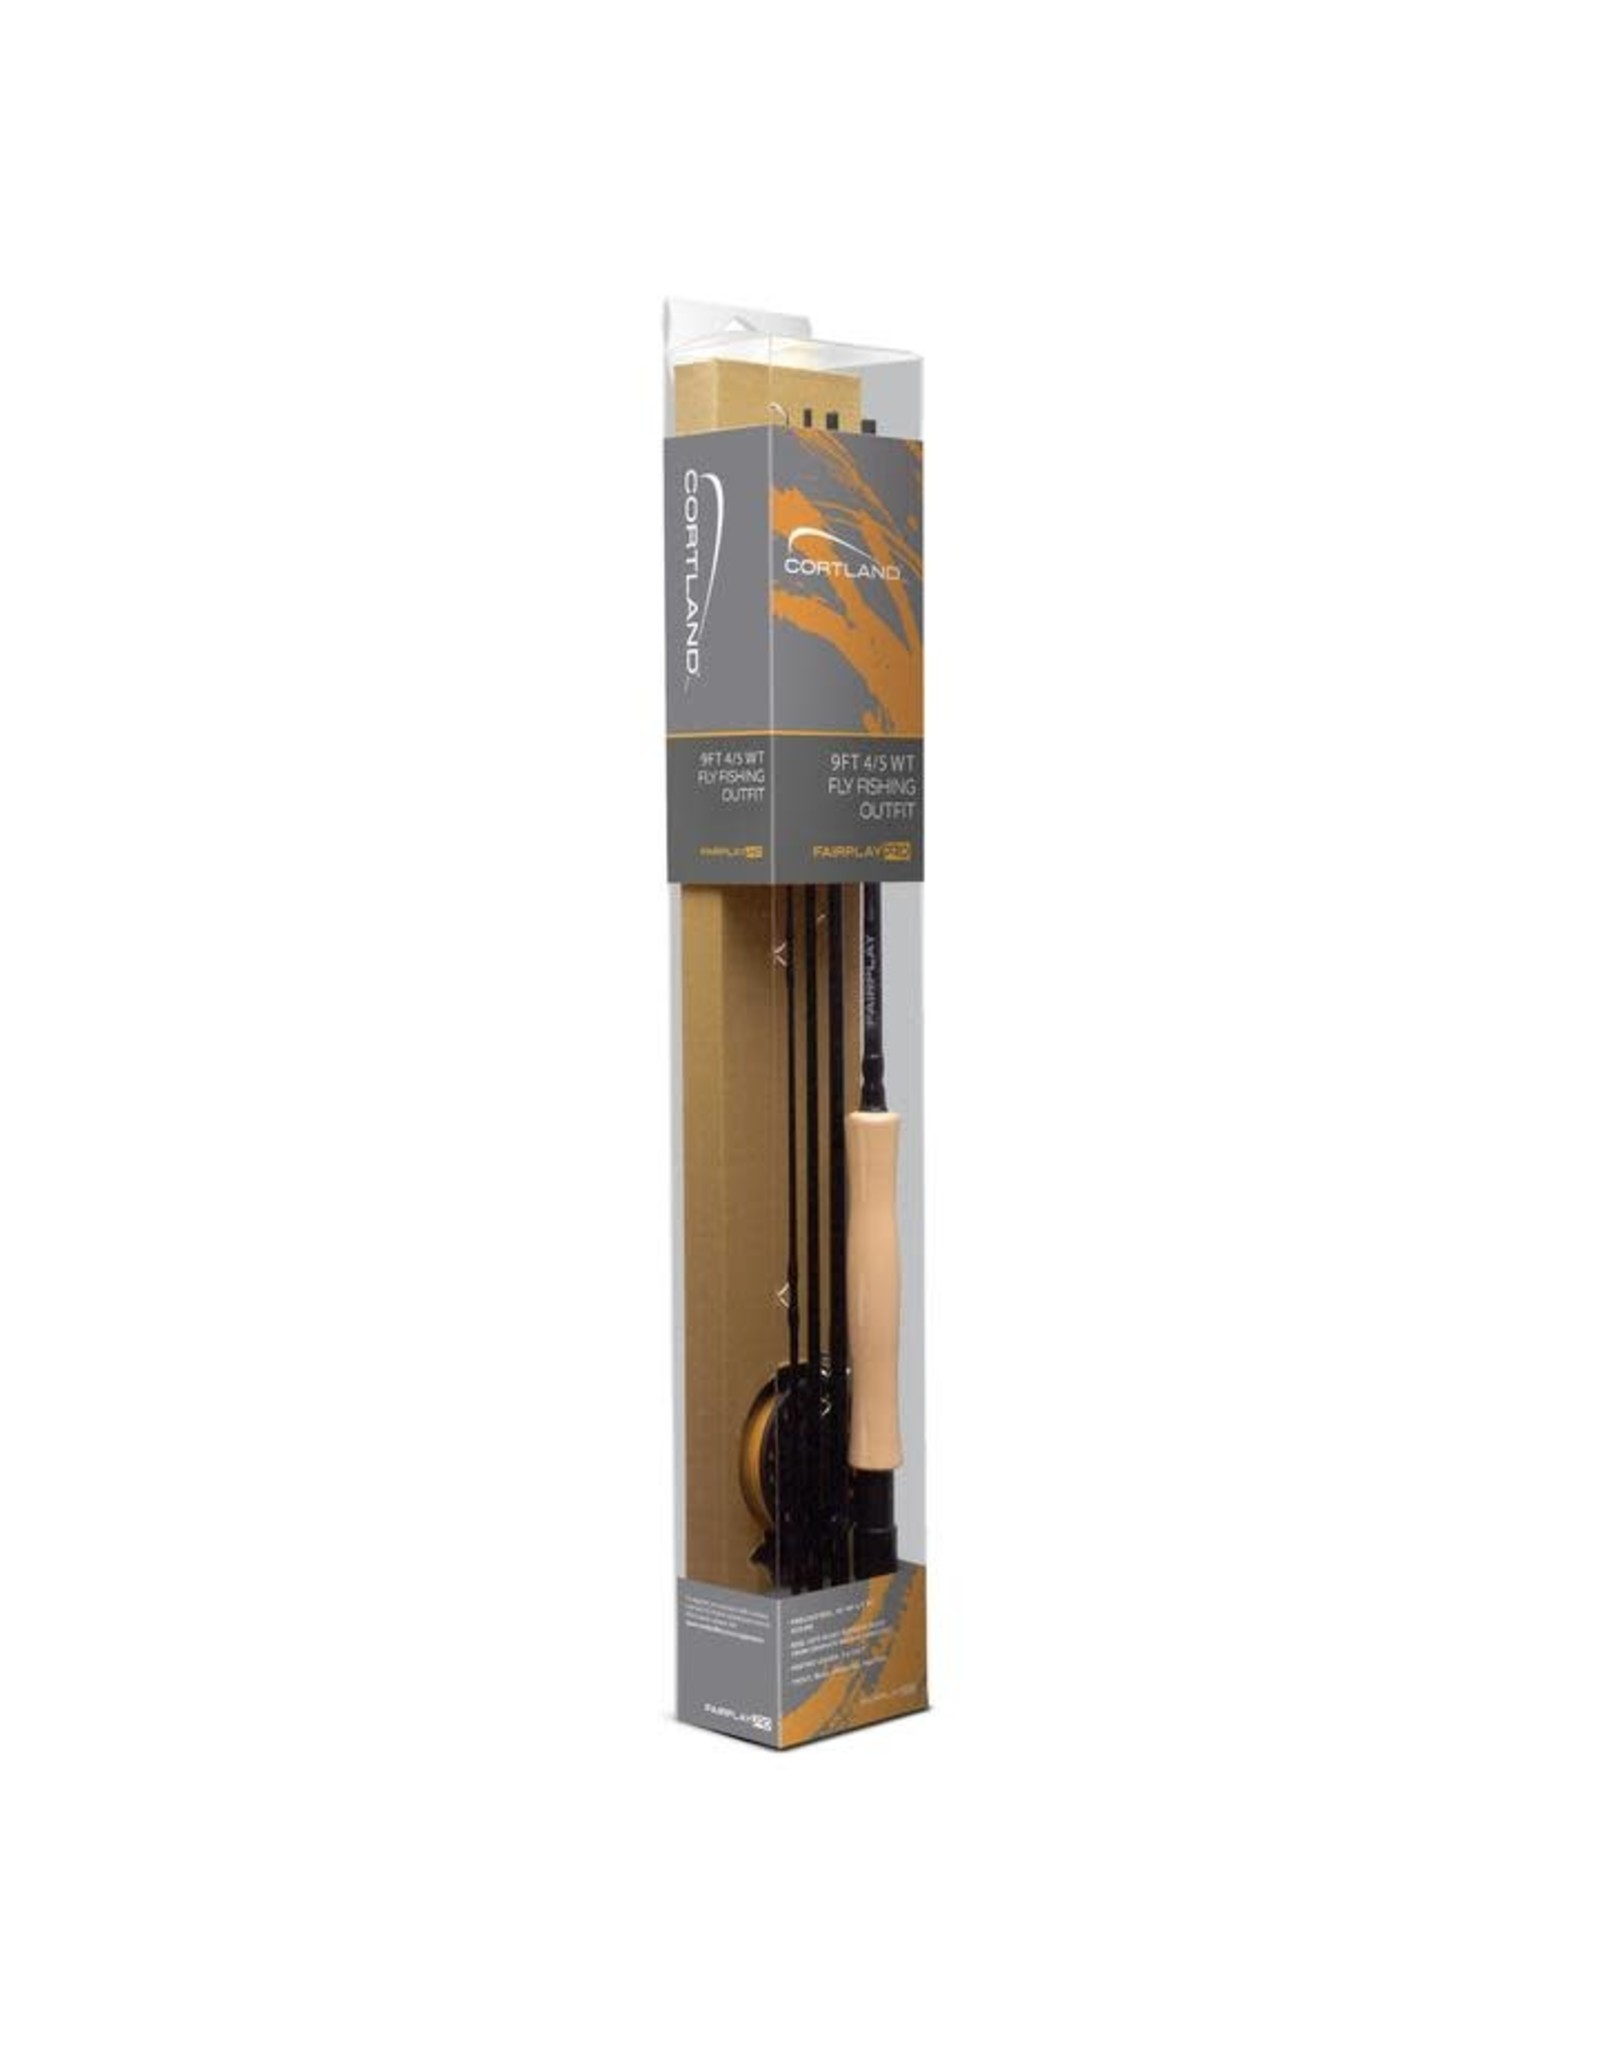 Cortland Line Cortland Fairplay 9FT 4/5 WT Fly Fishing Outfit